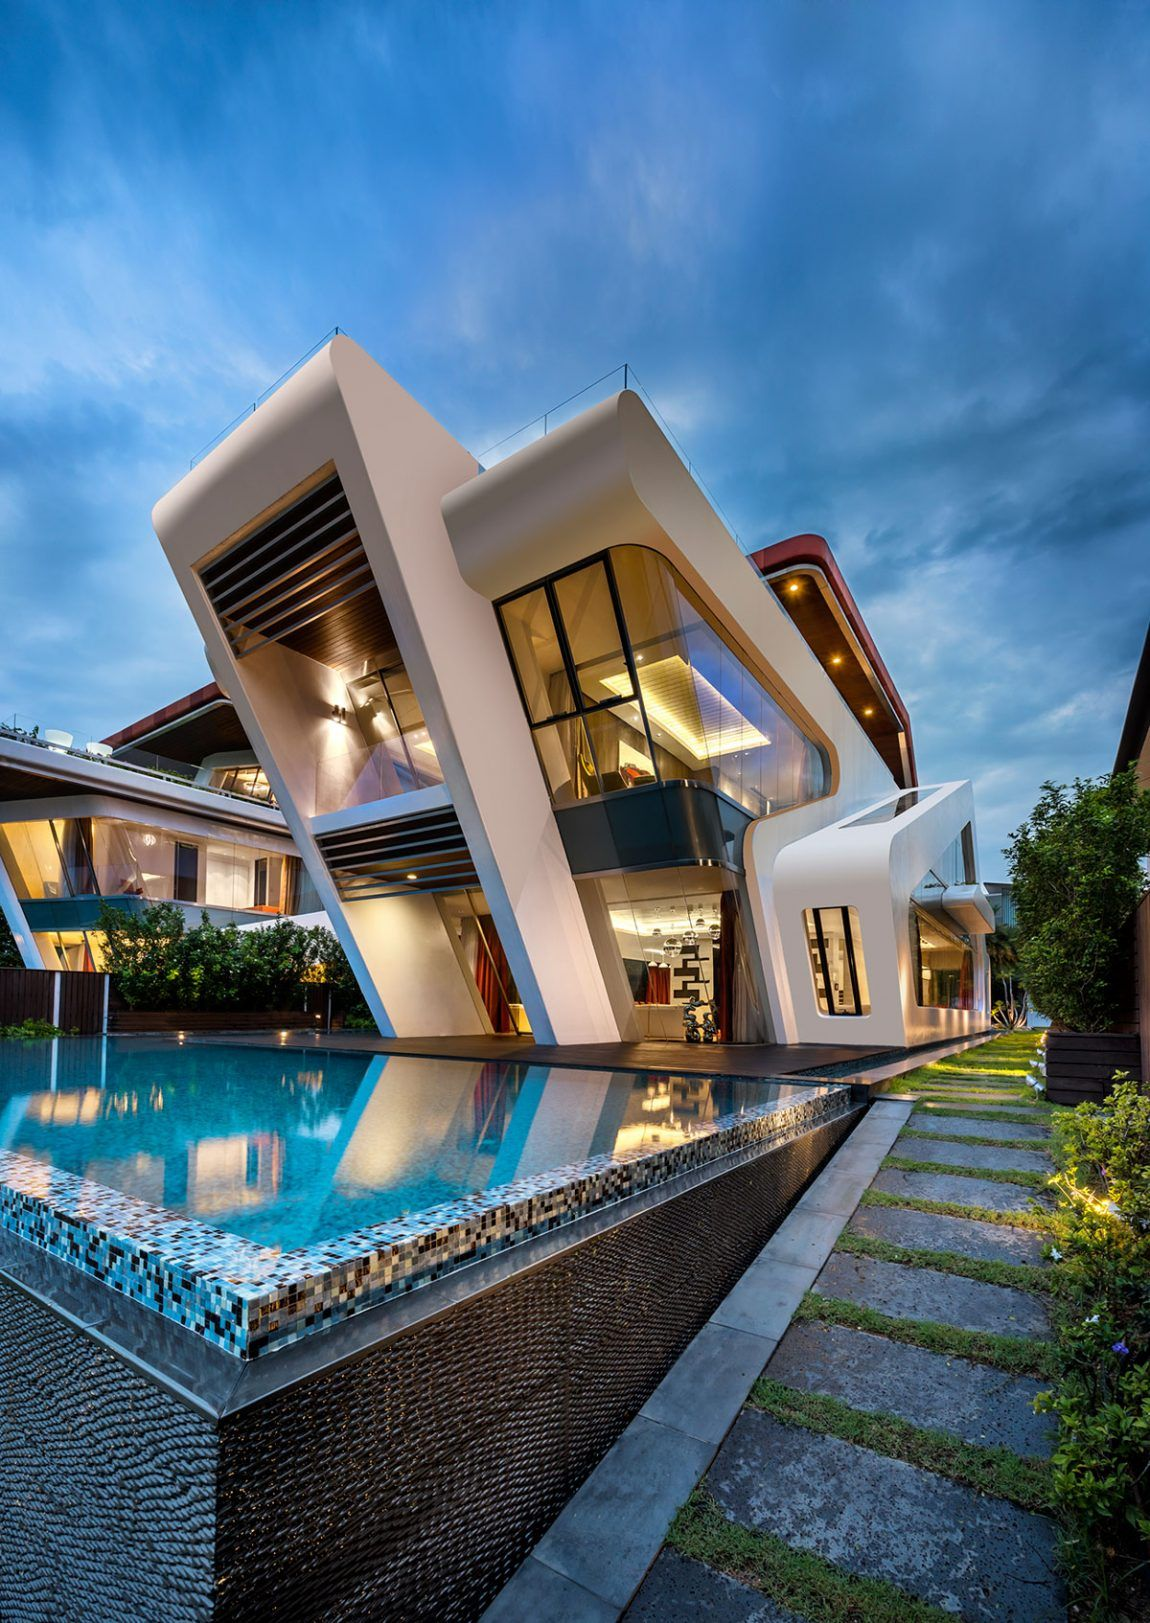 Mercurio design lab create a modern villa in singapore for Modern architecture homes